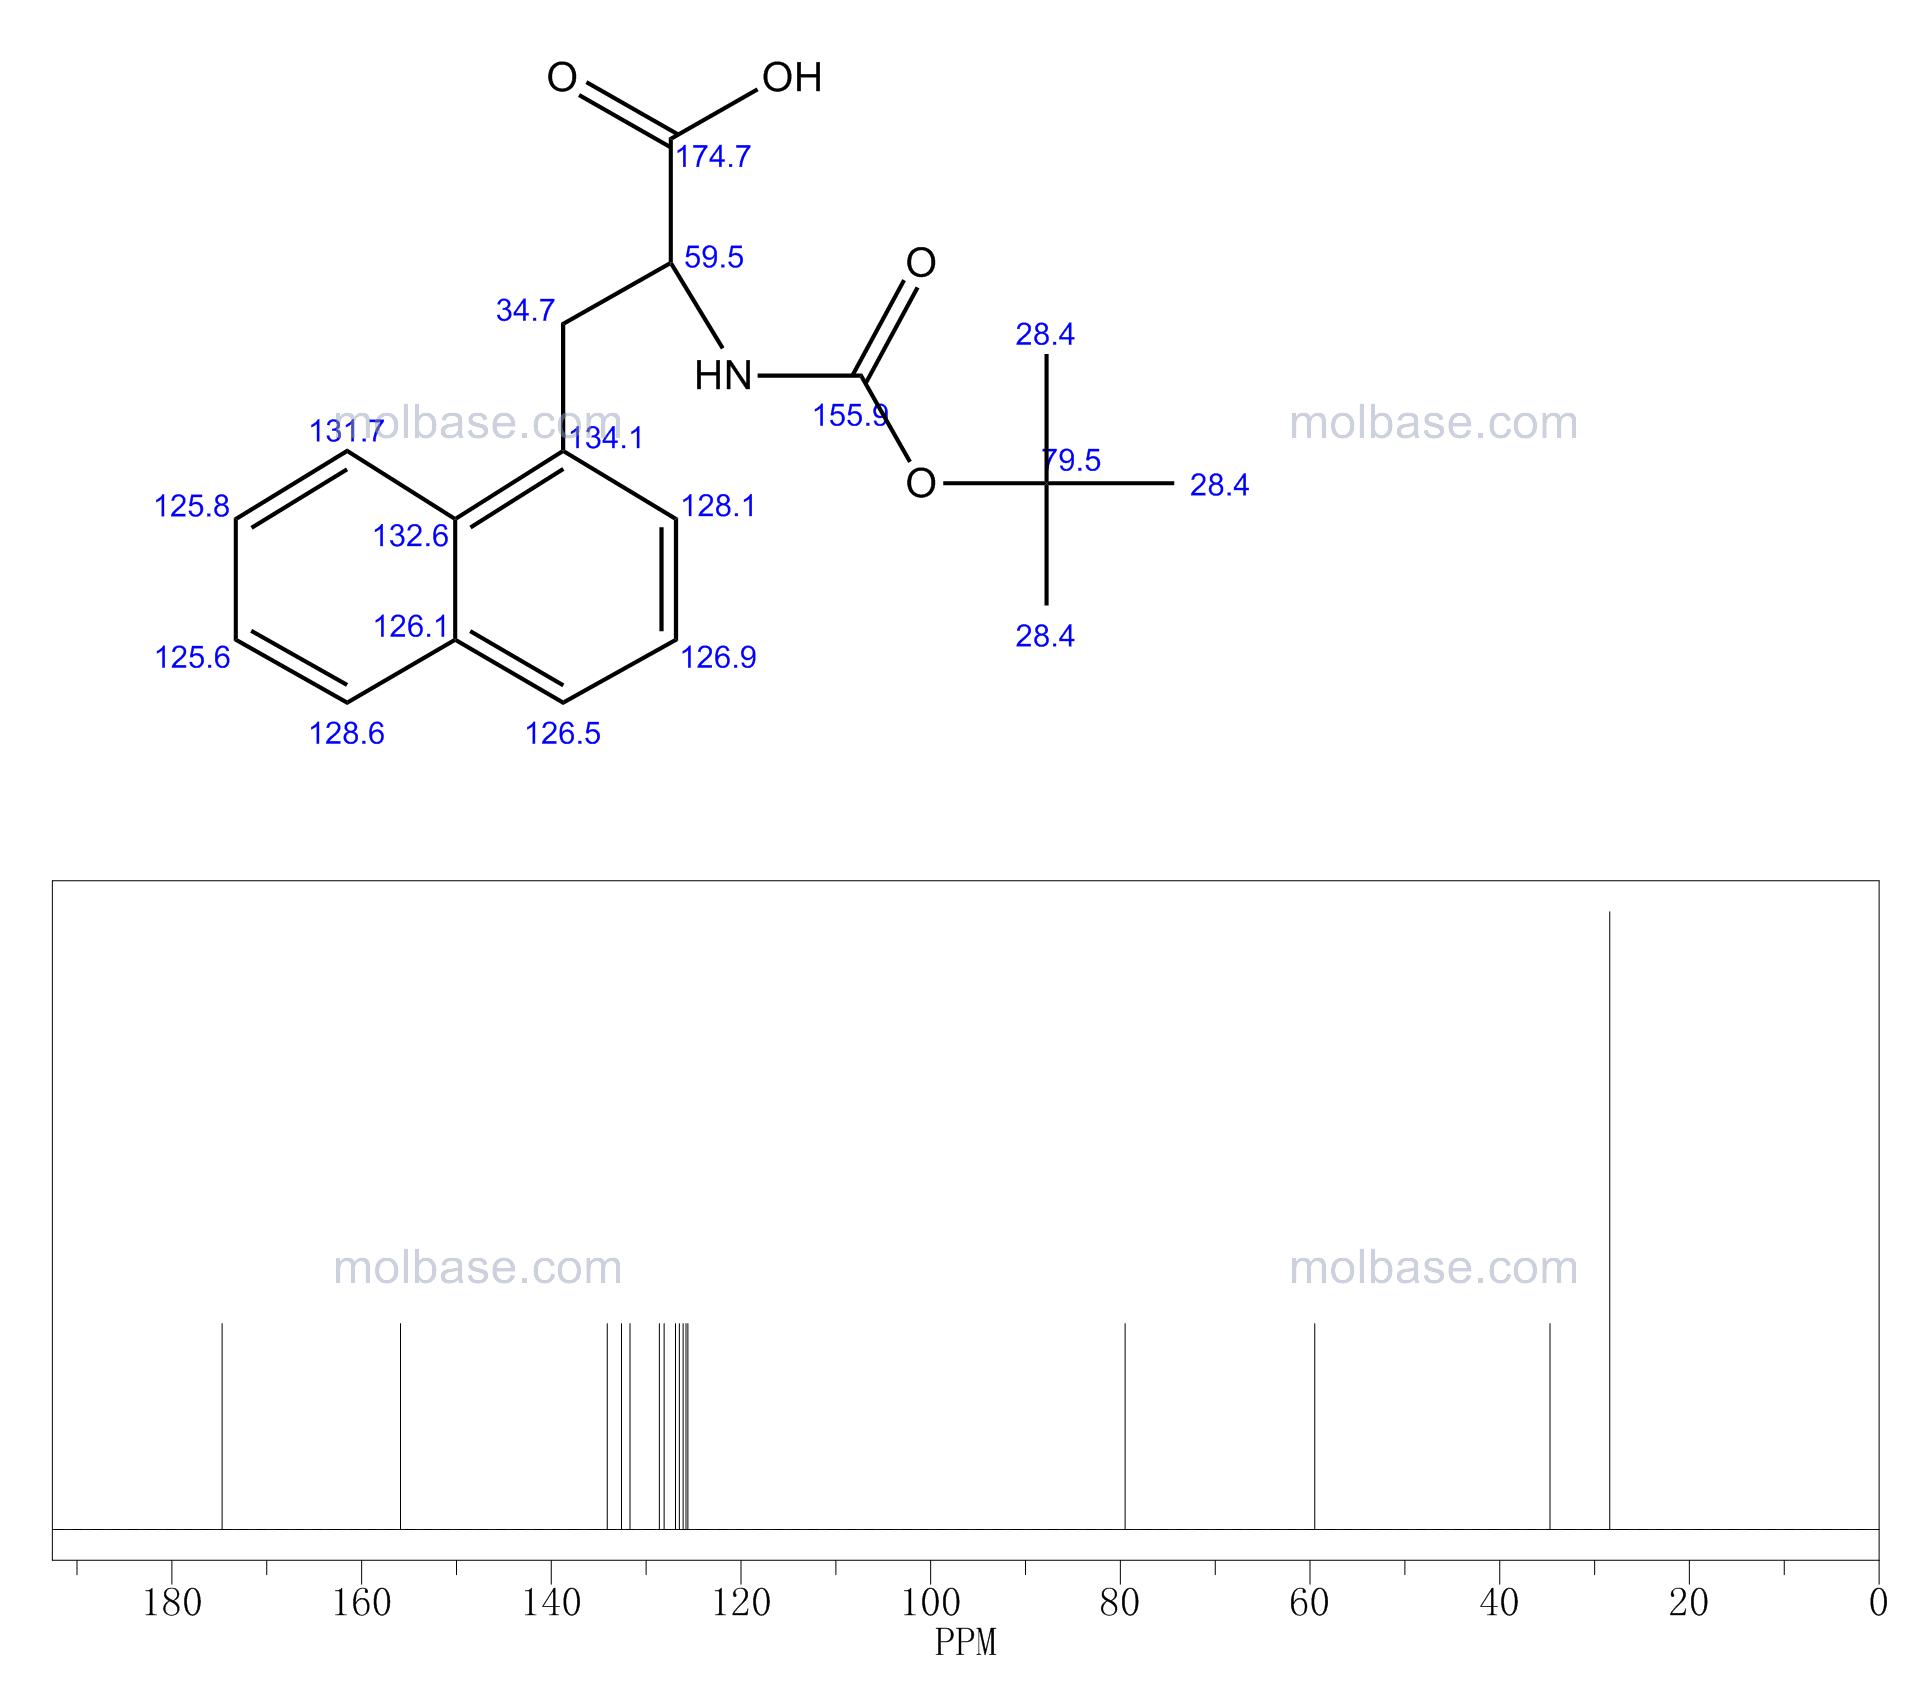 2-[(2-methylpropan-2-yl)oxycarbonylamino]-3-naphthalen-1-ylpropanoic acid NMR spectra analysis, Chemical CAS NO. 104882-22-6 NMR spectral analysis, 2-[(2-methylpropan-2-yl)oxycarbonylamino]-3-naphthalen-1-ylpropanoic acid C-NMR spectrum